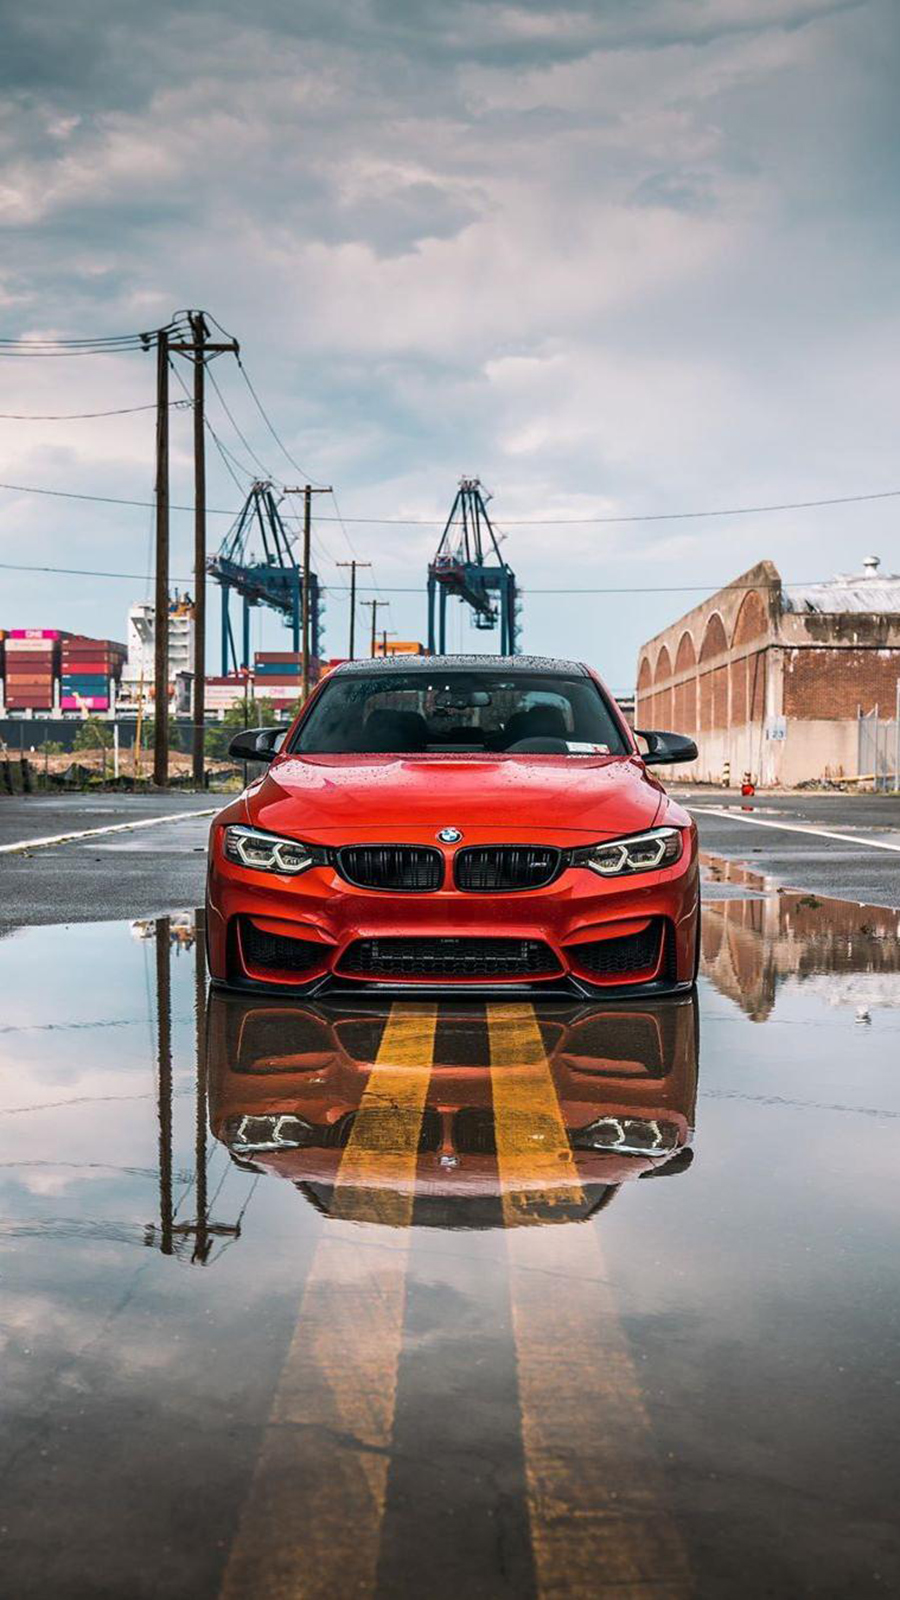 Red Bmw Wallpaper – Most Popular BMW Wallpapers Free Download